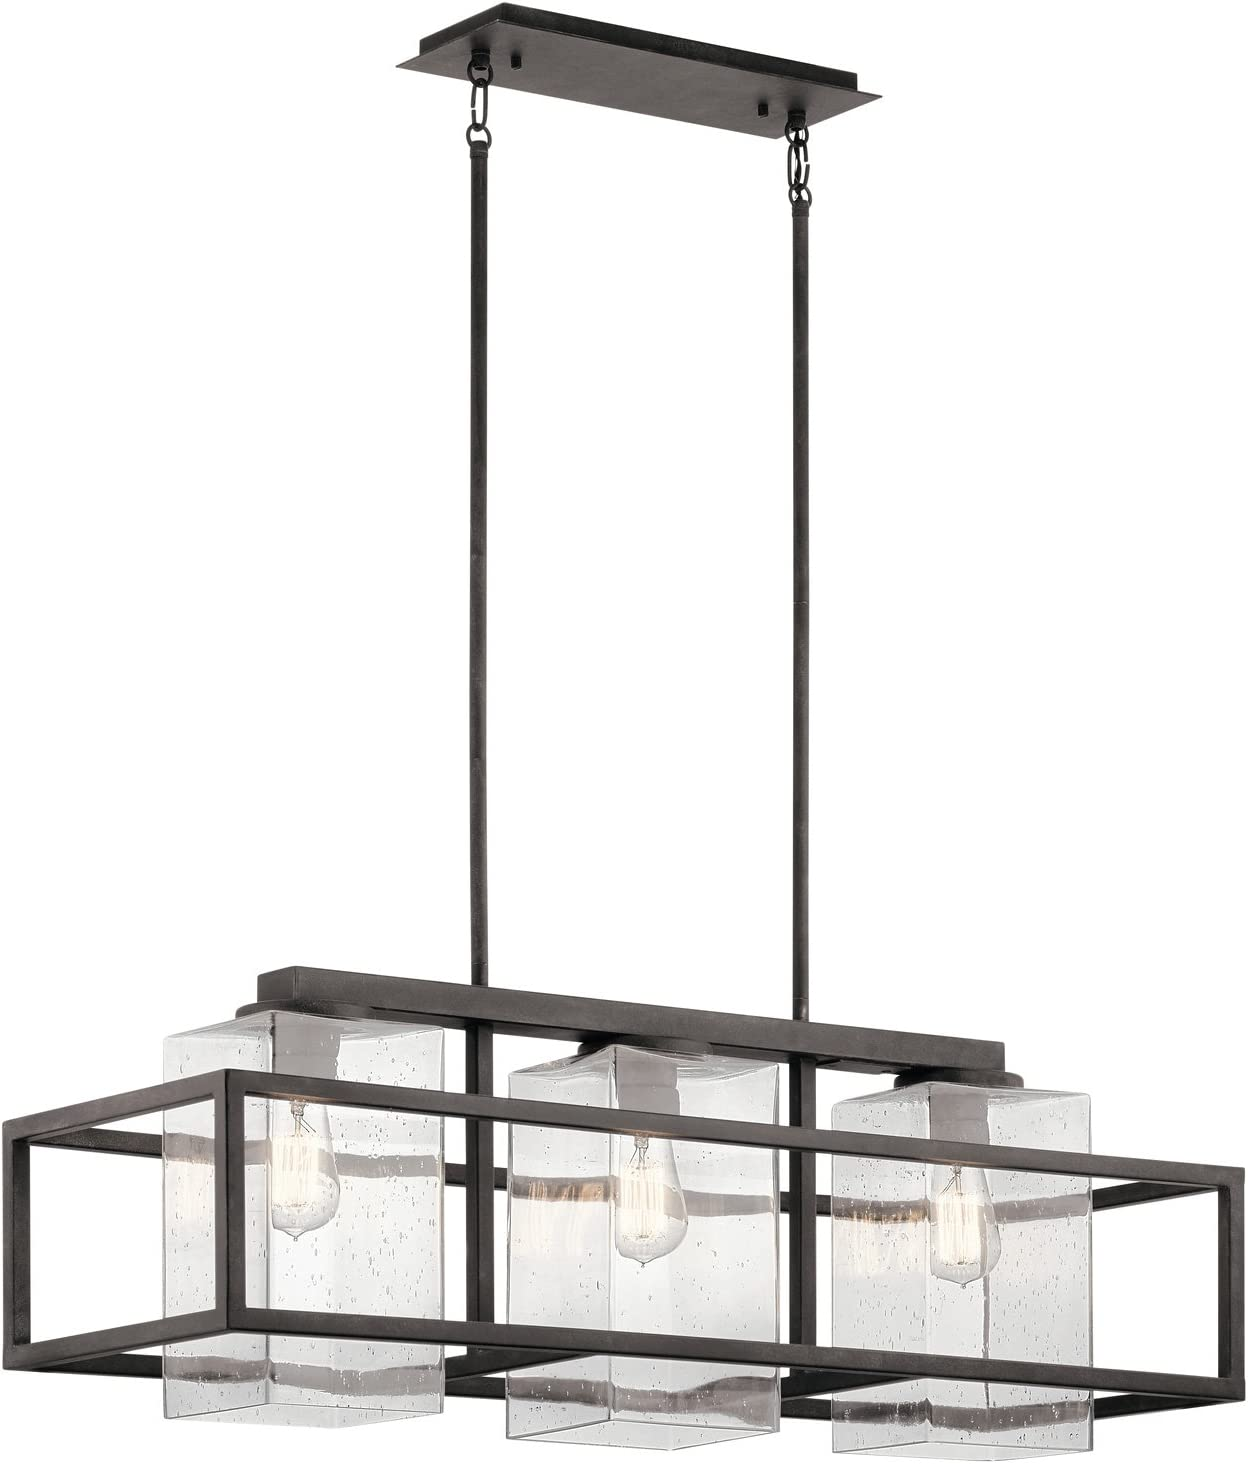 Kichler 49805WZC Wright 3-Light Outdoor Linear Chandelier in Weathered Zinc, 36